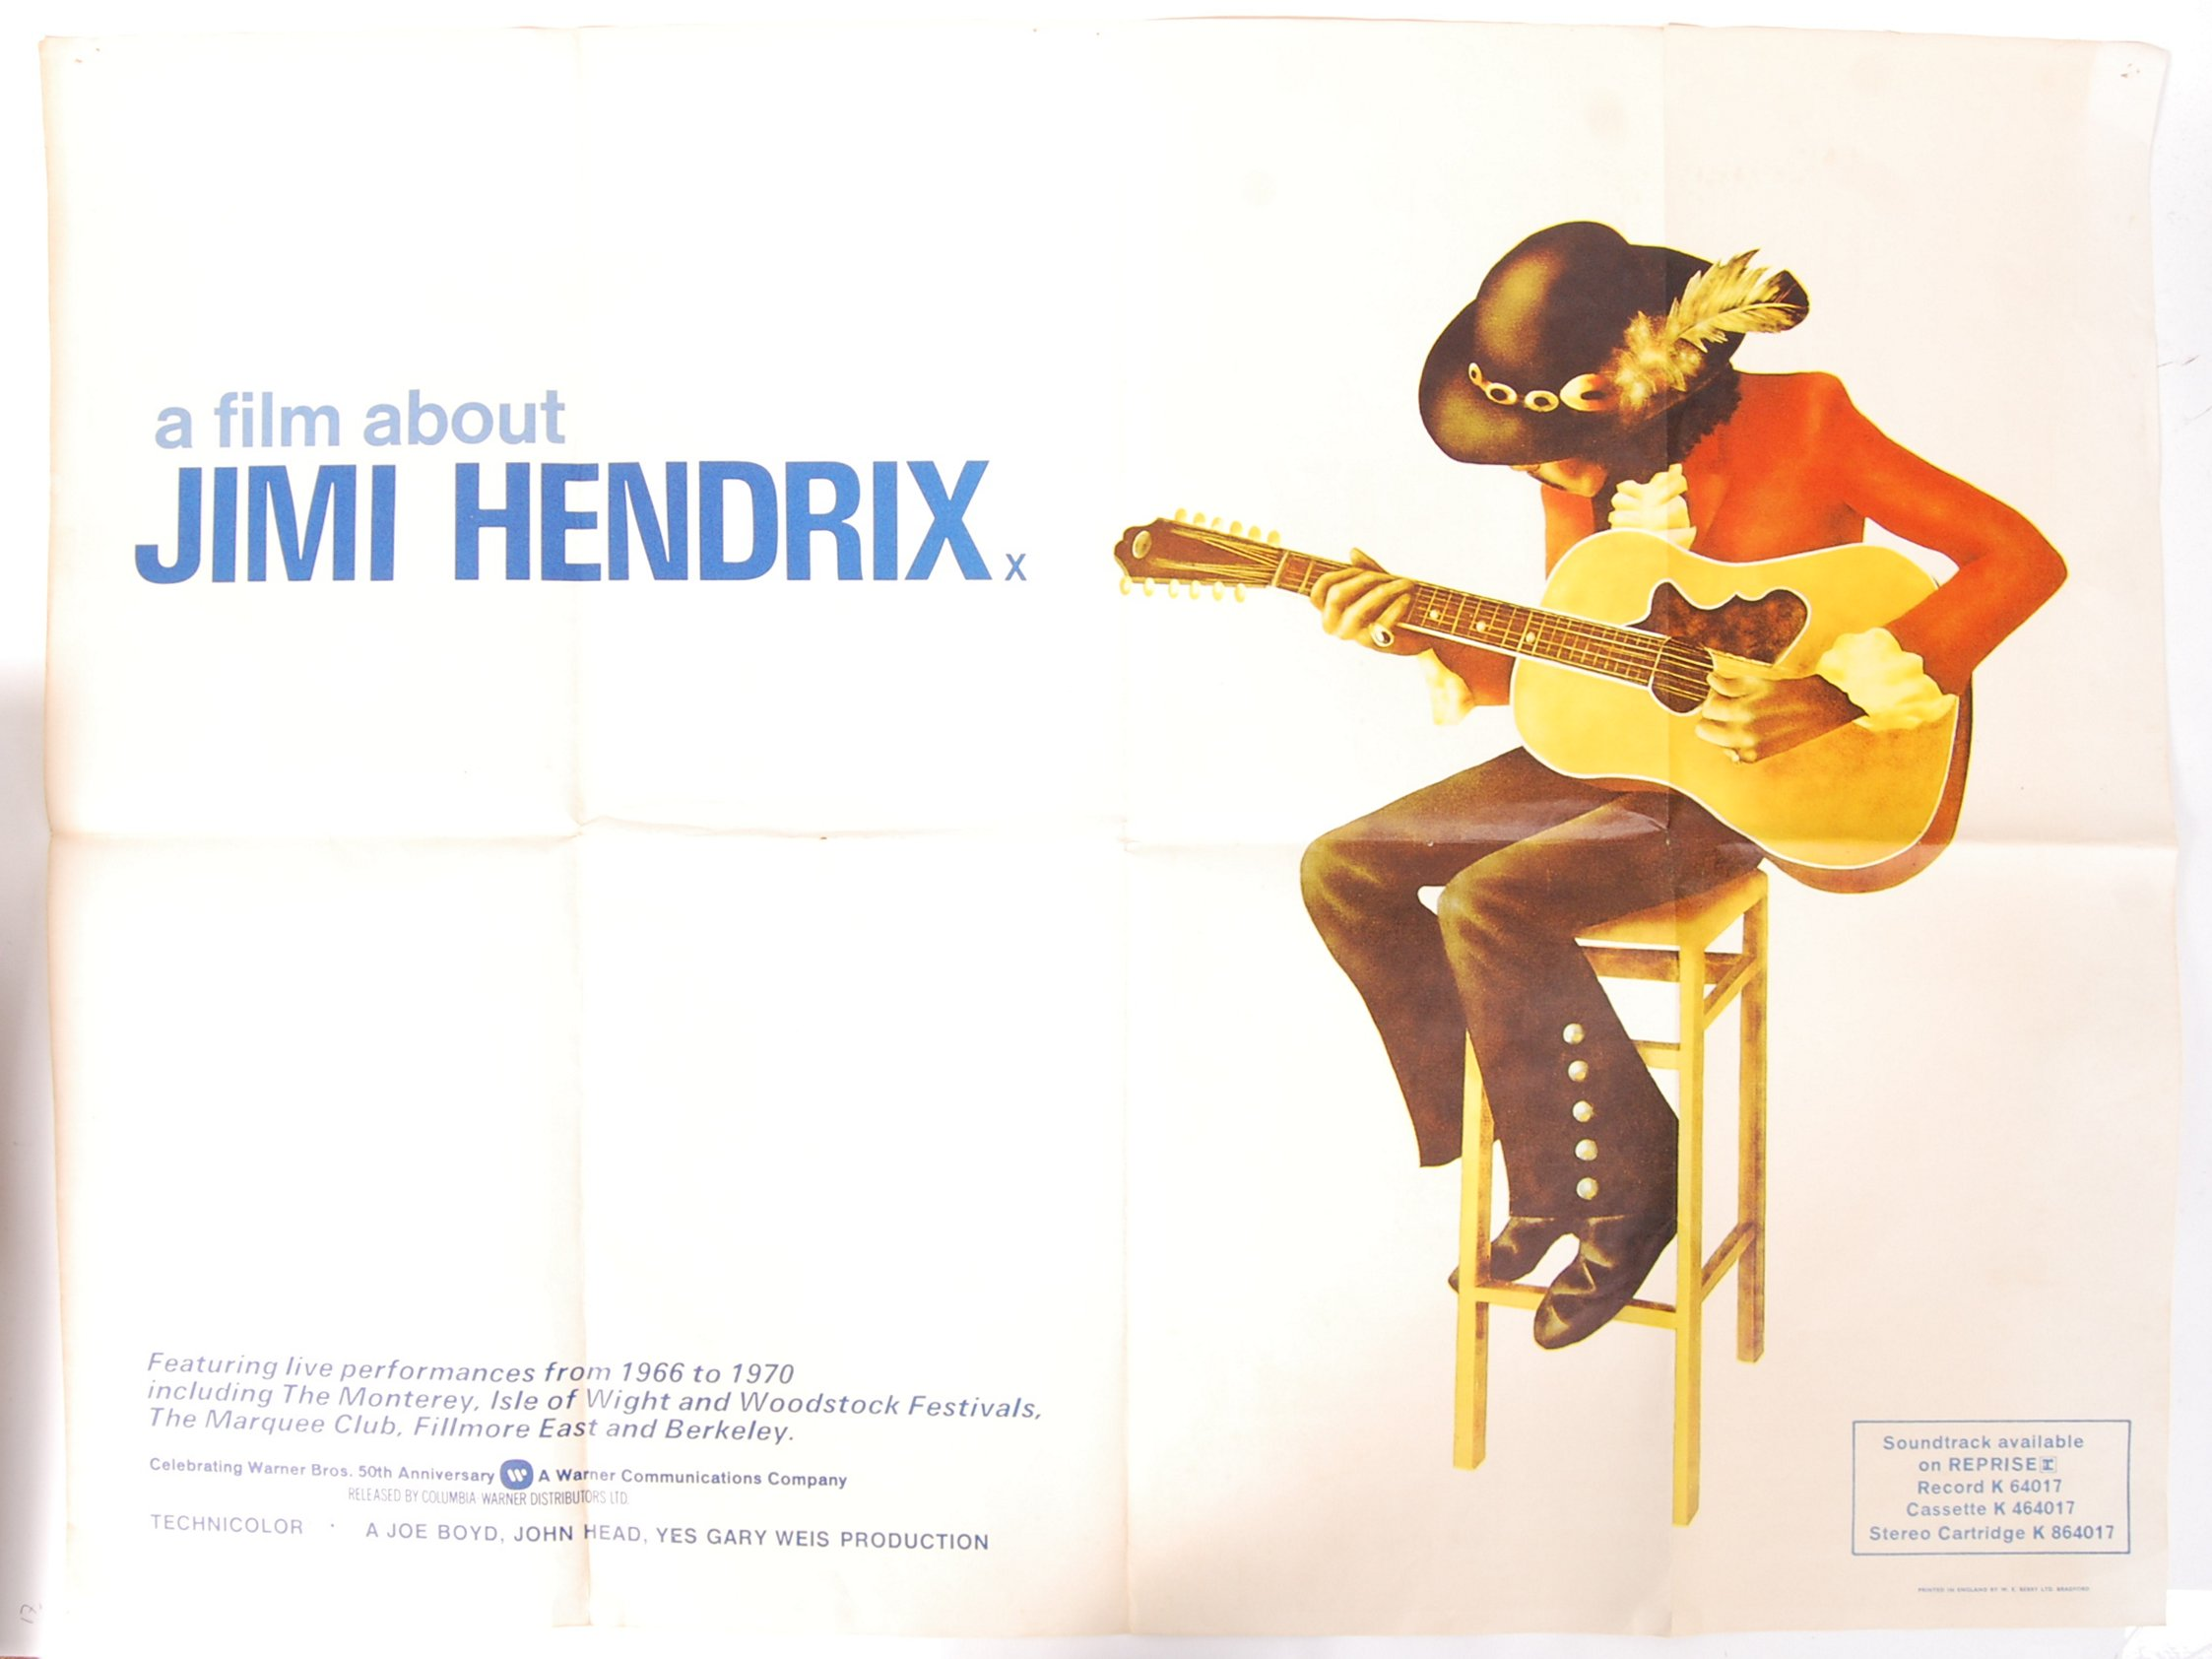 ' A FILM ABOUT JIMI HENDRIX ' 1973 ORIGINAL CINEMA